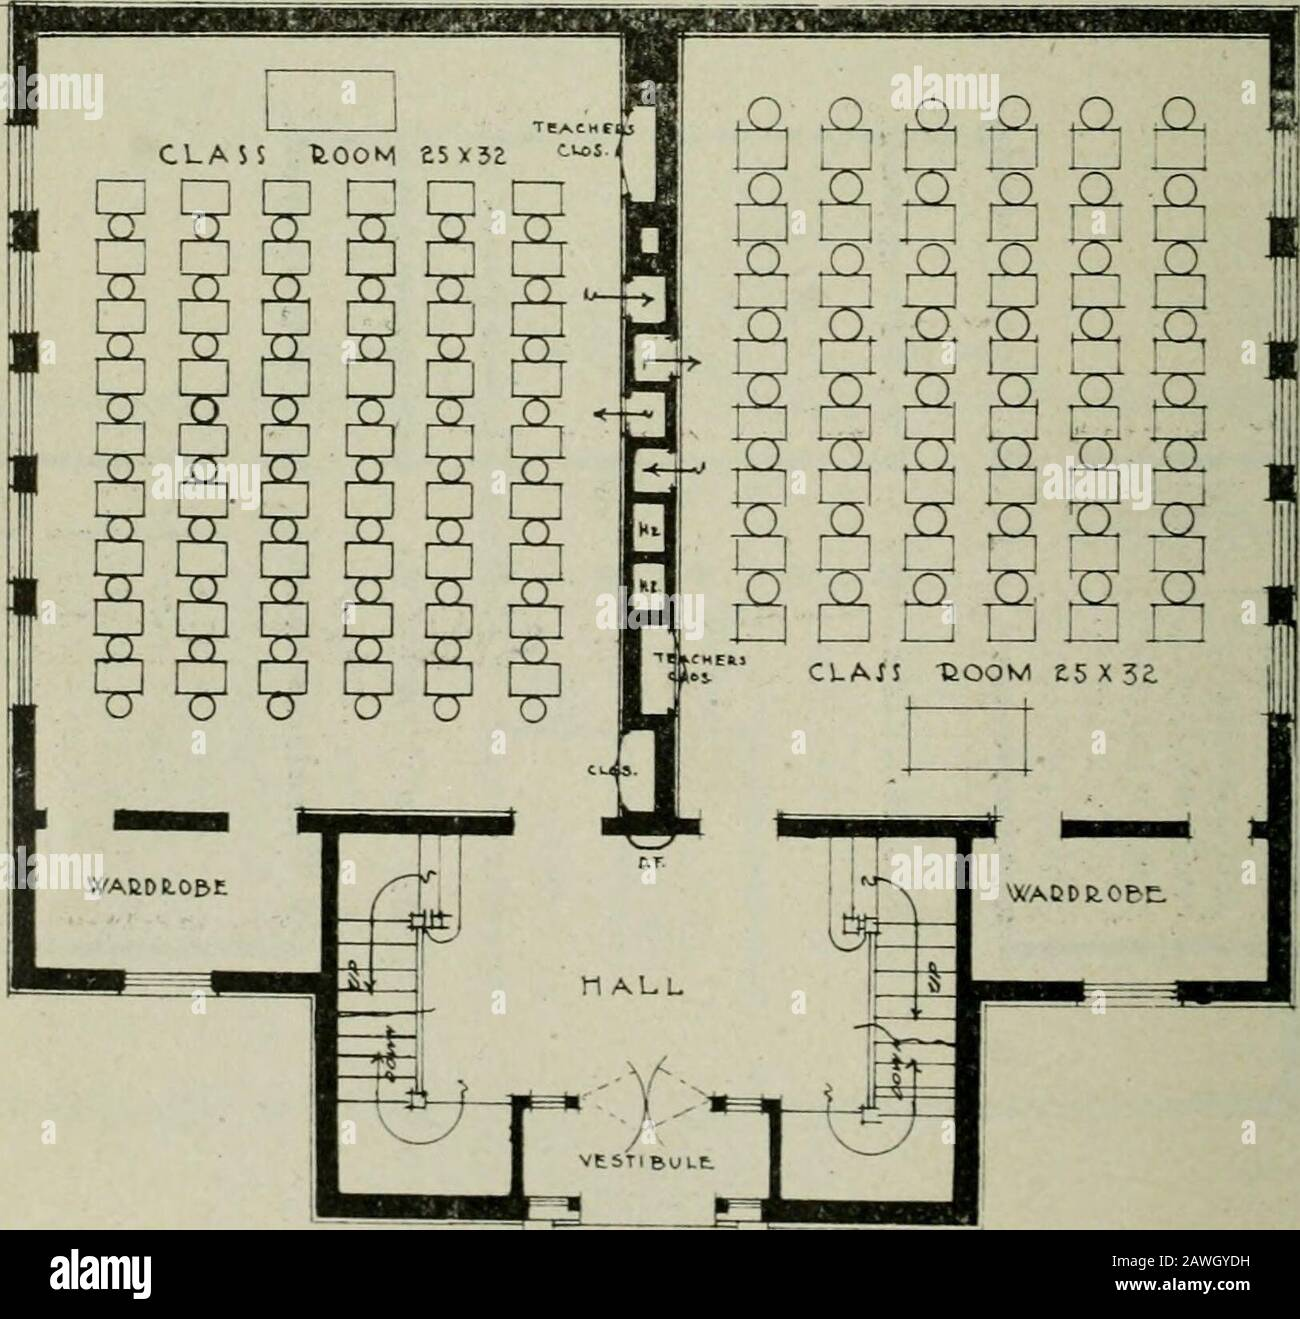 Appendix To The Journals Of The Senate And Assembly Of The Session Of The Legislature Of The State Of California A Four I Oom Building Hj First Floor Plan Four Room School 41